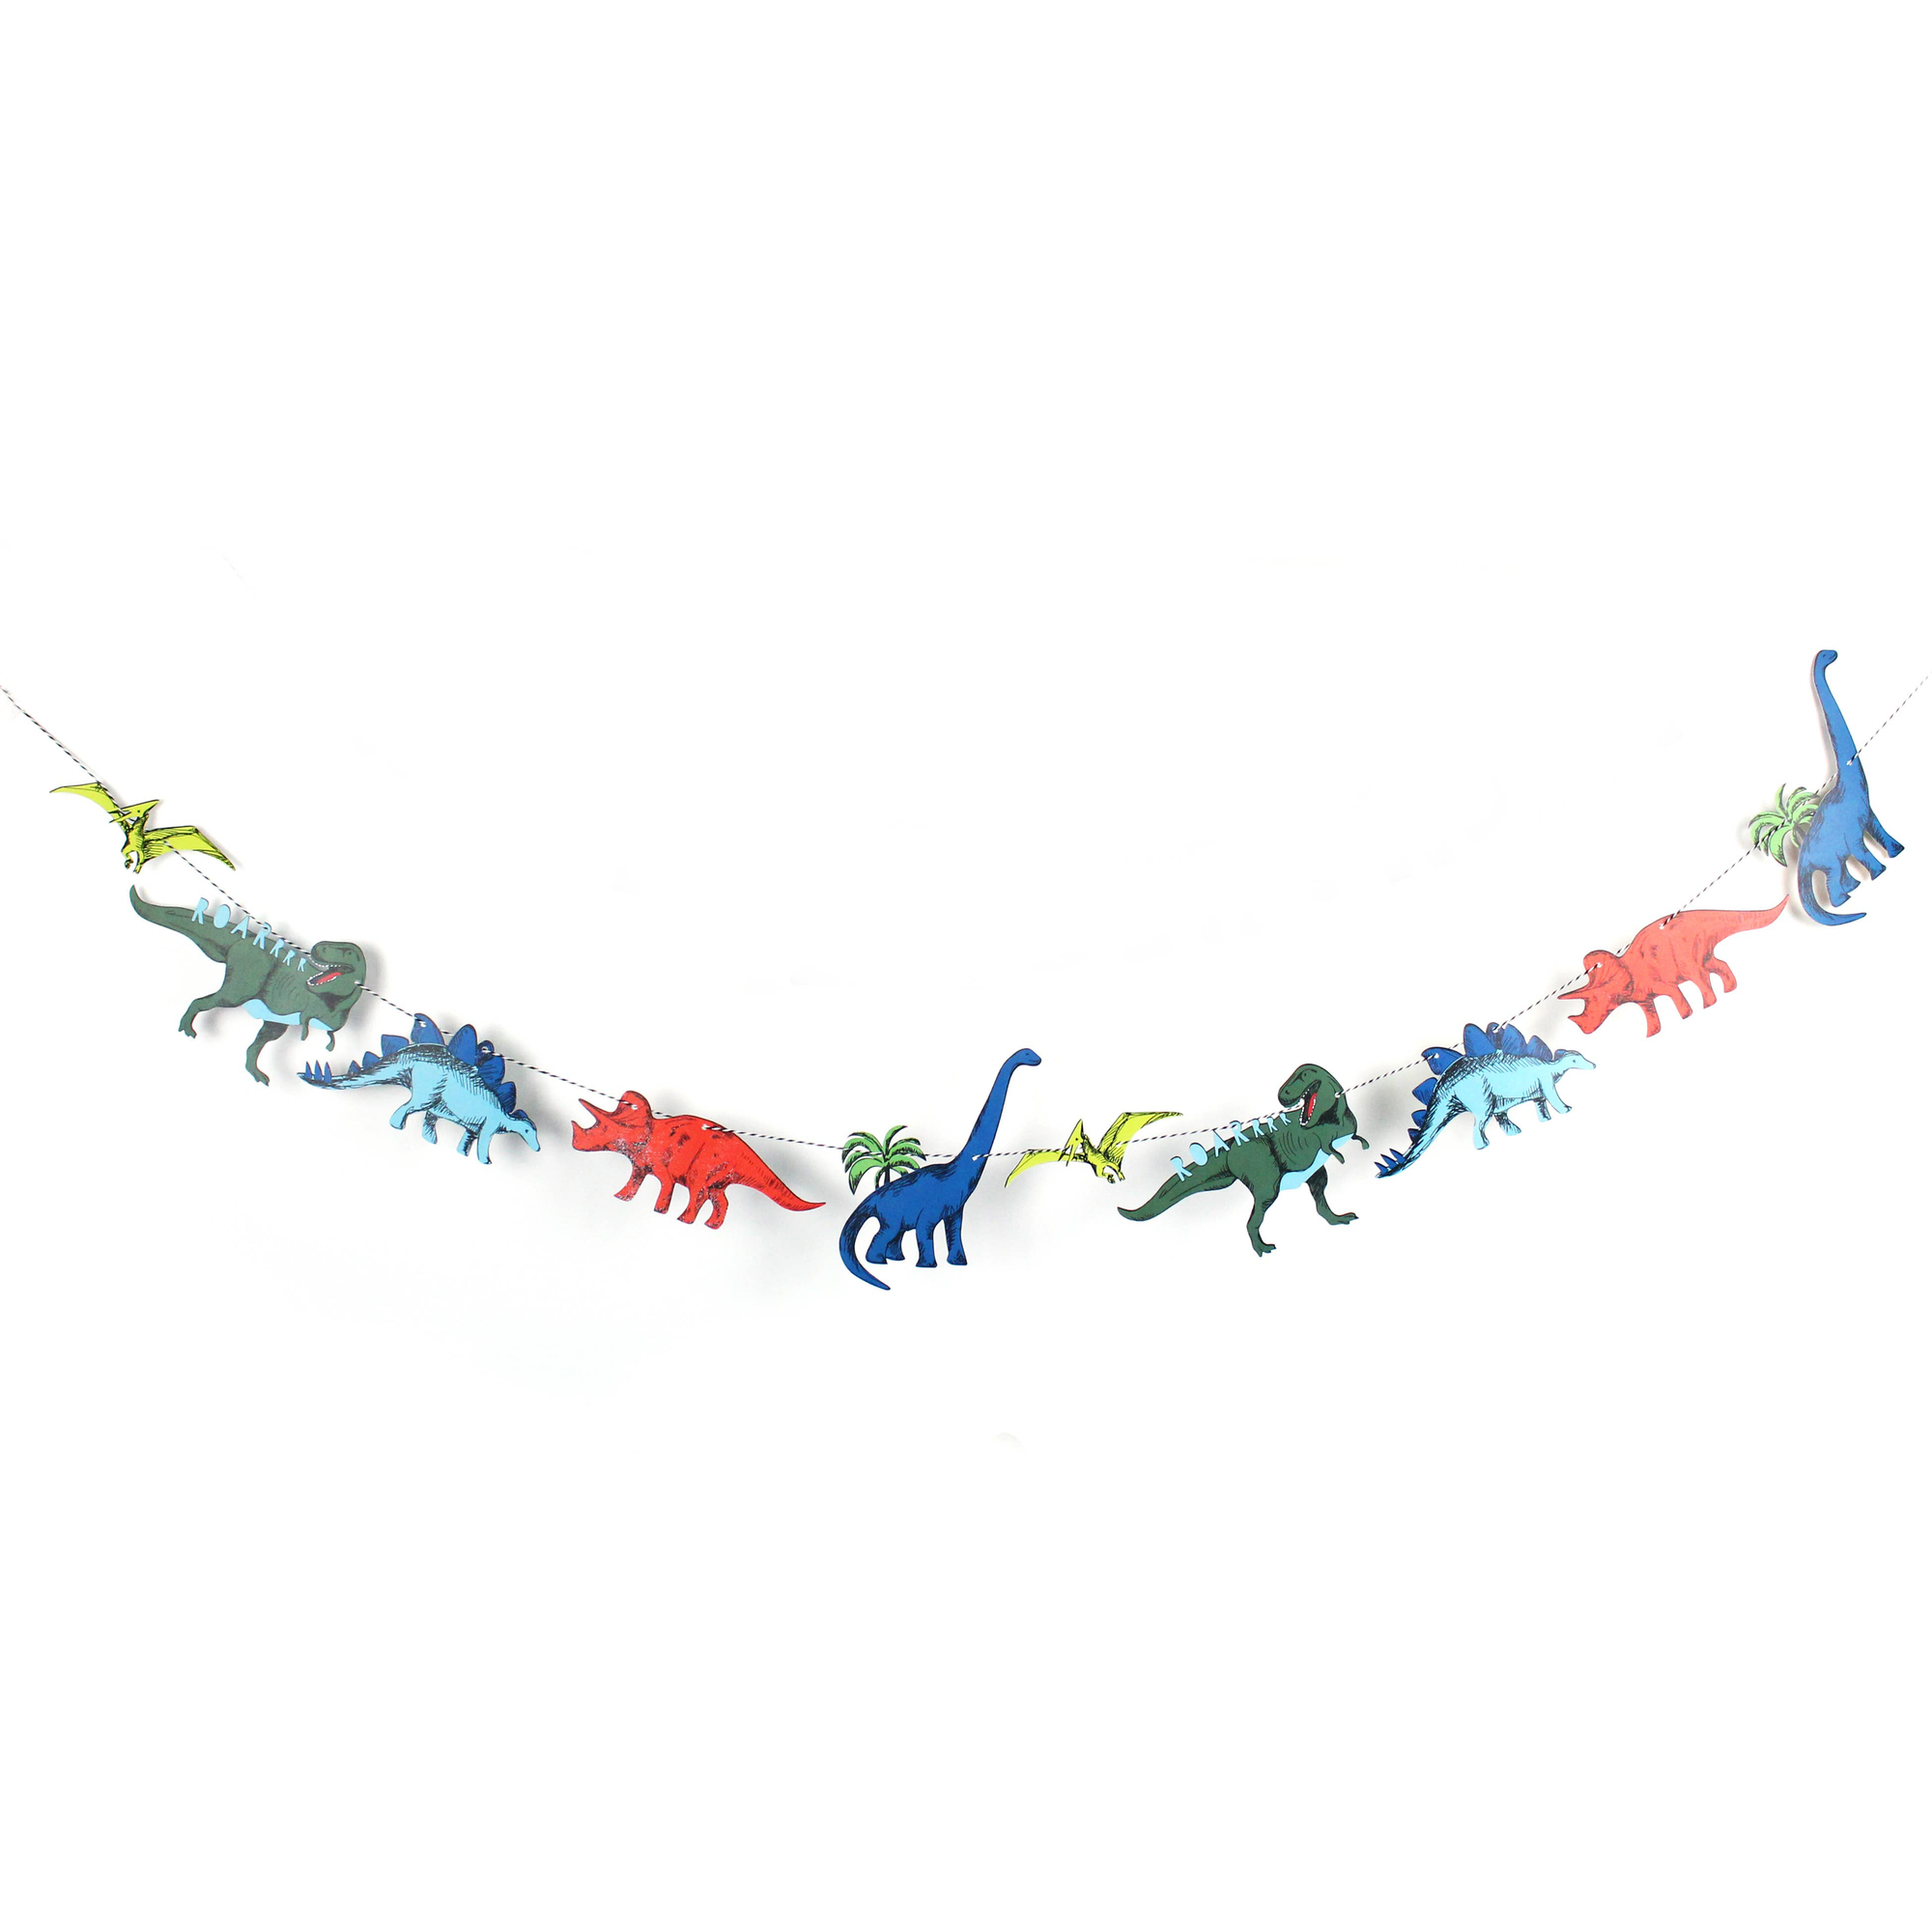 Dinosaur Party Garland 7.5ft | The Party Darling